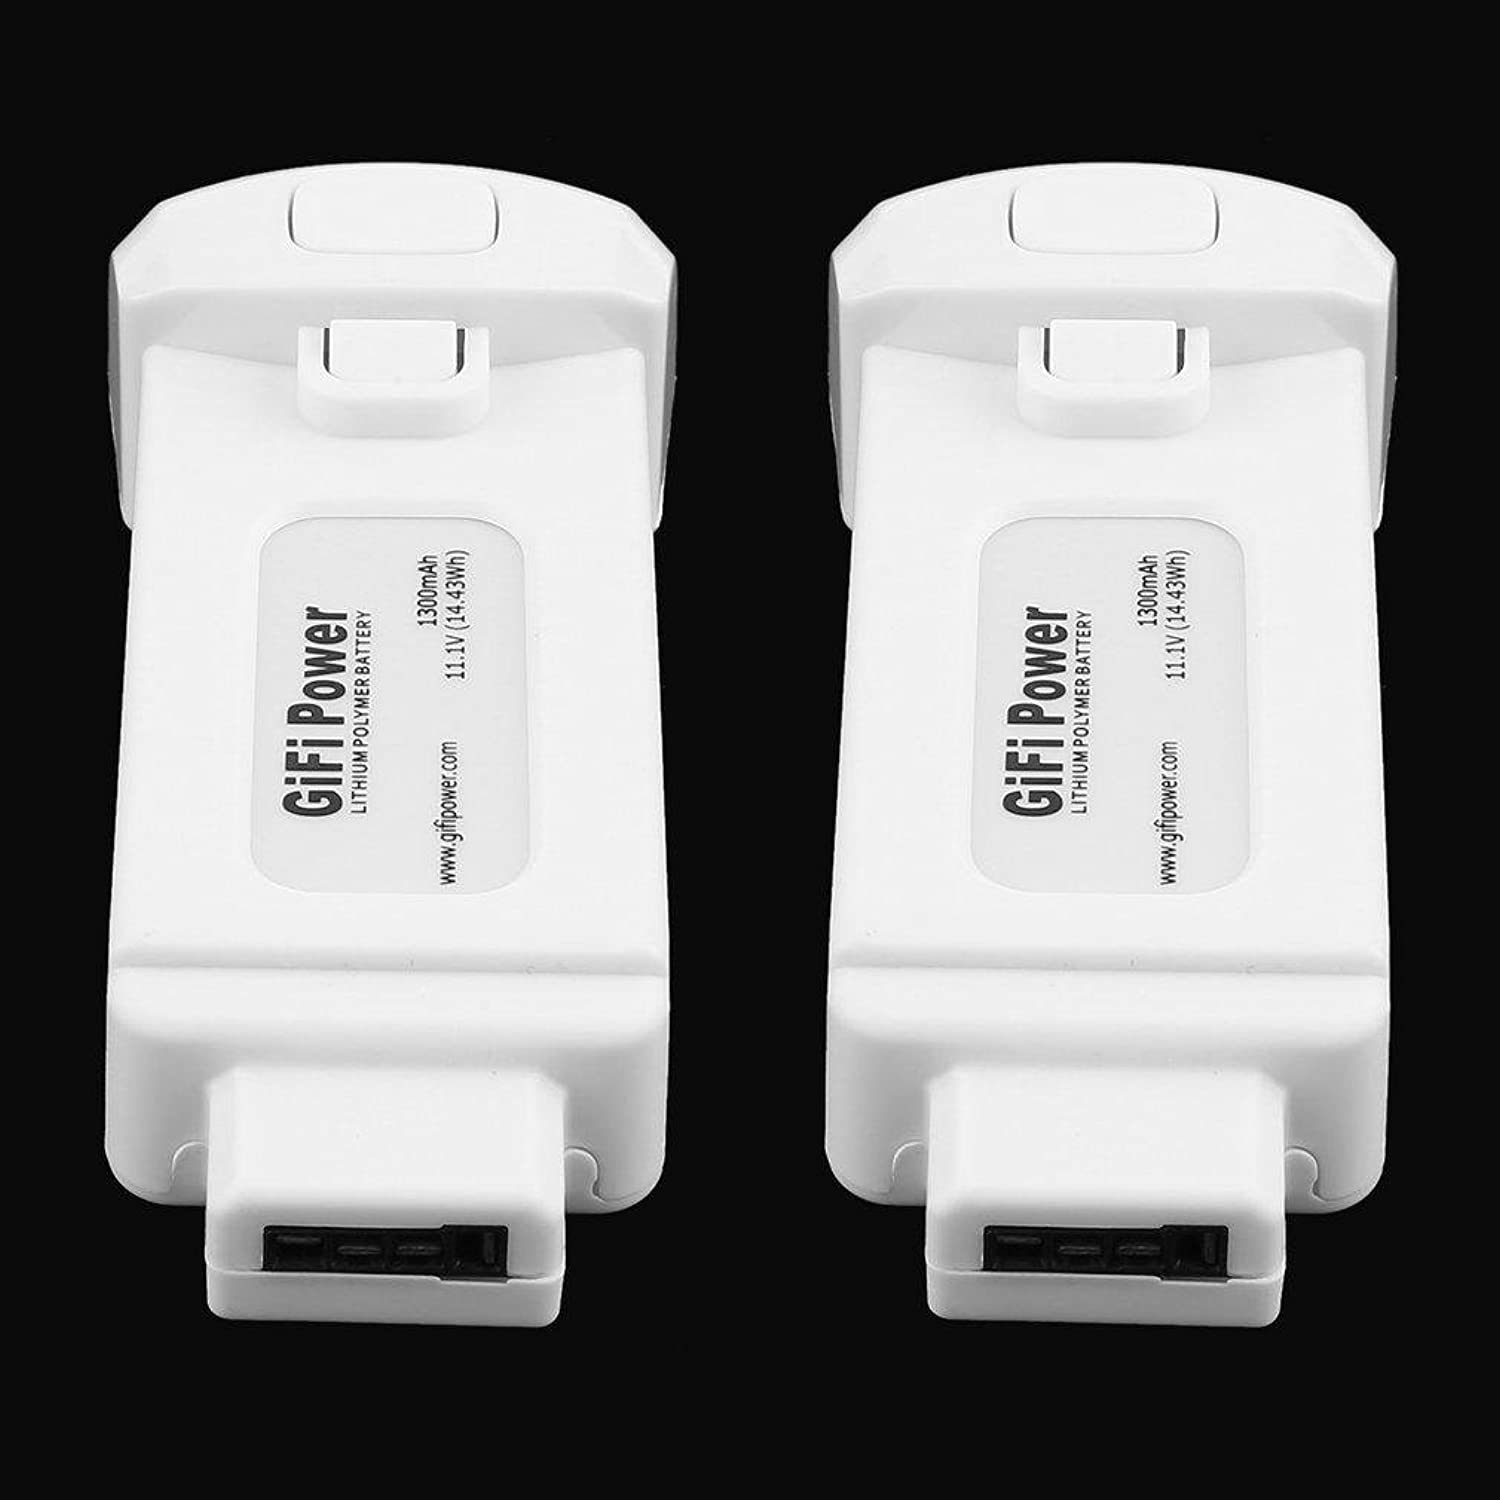 Favrison 2 Pcs 11.1V 1300mAh 14.43Wh Lithium Polymer Battery for Yuneec Breeze Drone